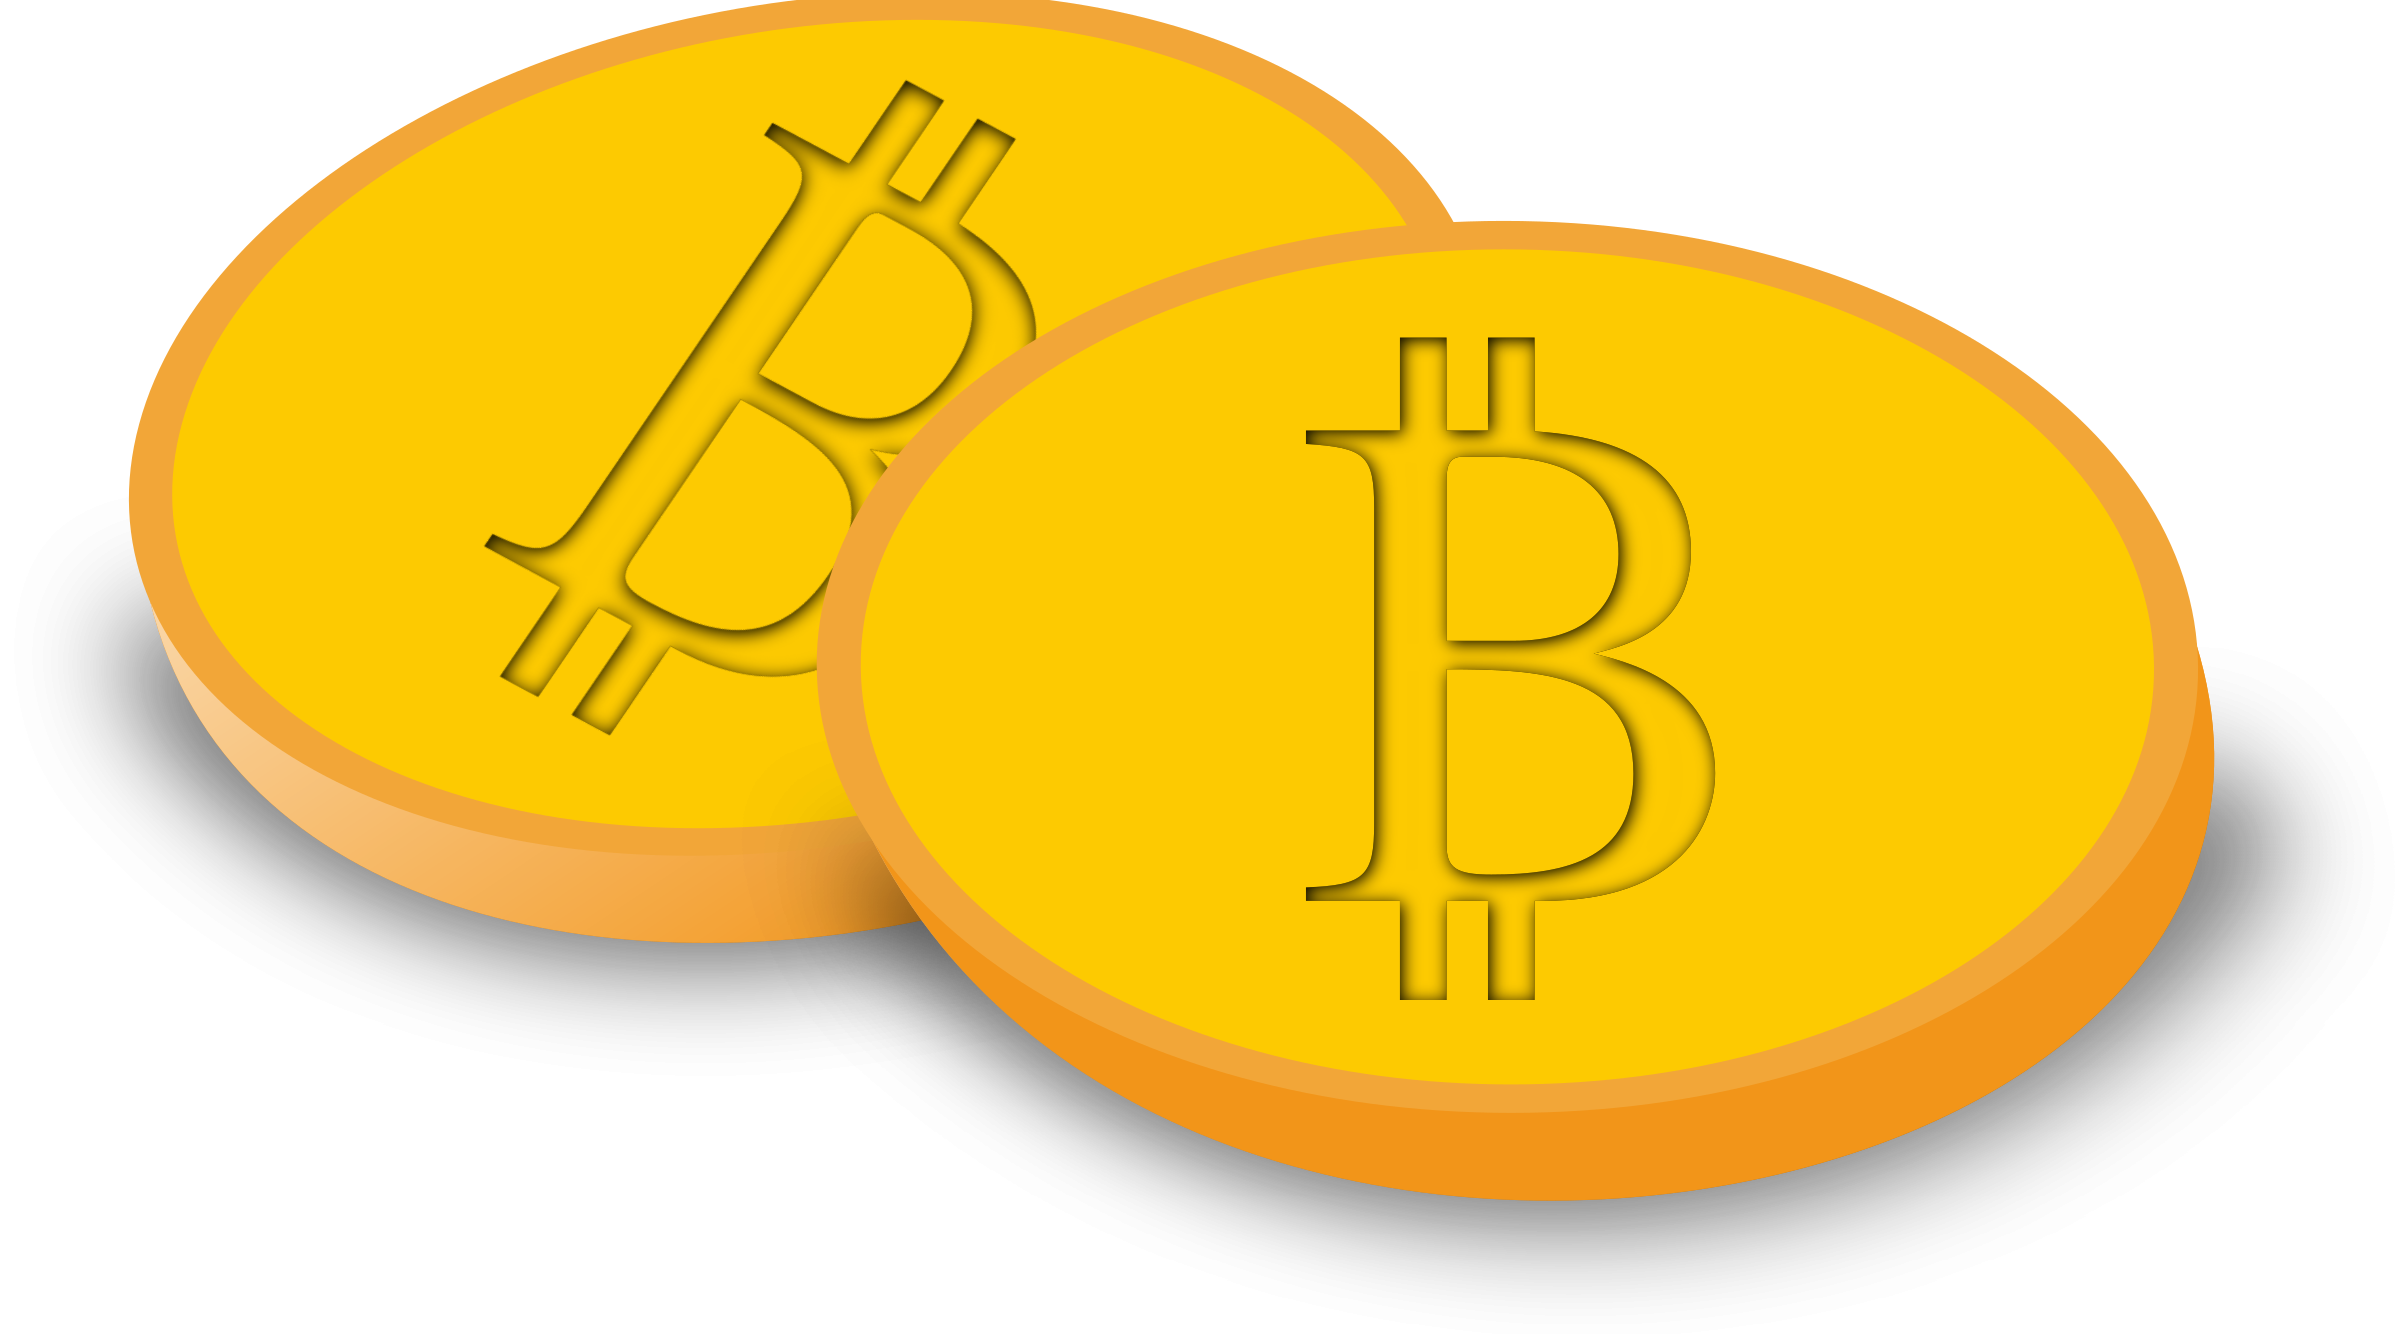 Bitcoin icons png free. Coin clipart yellow